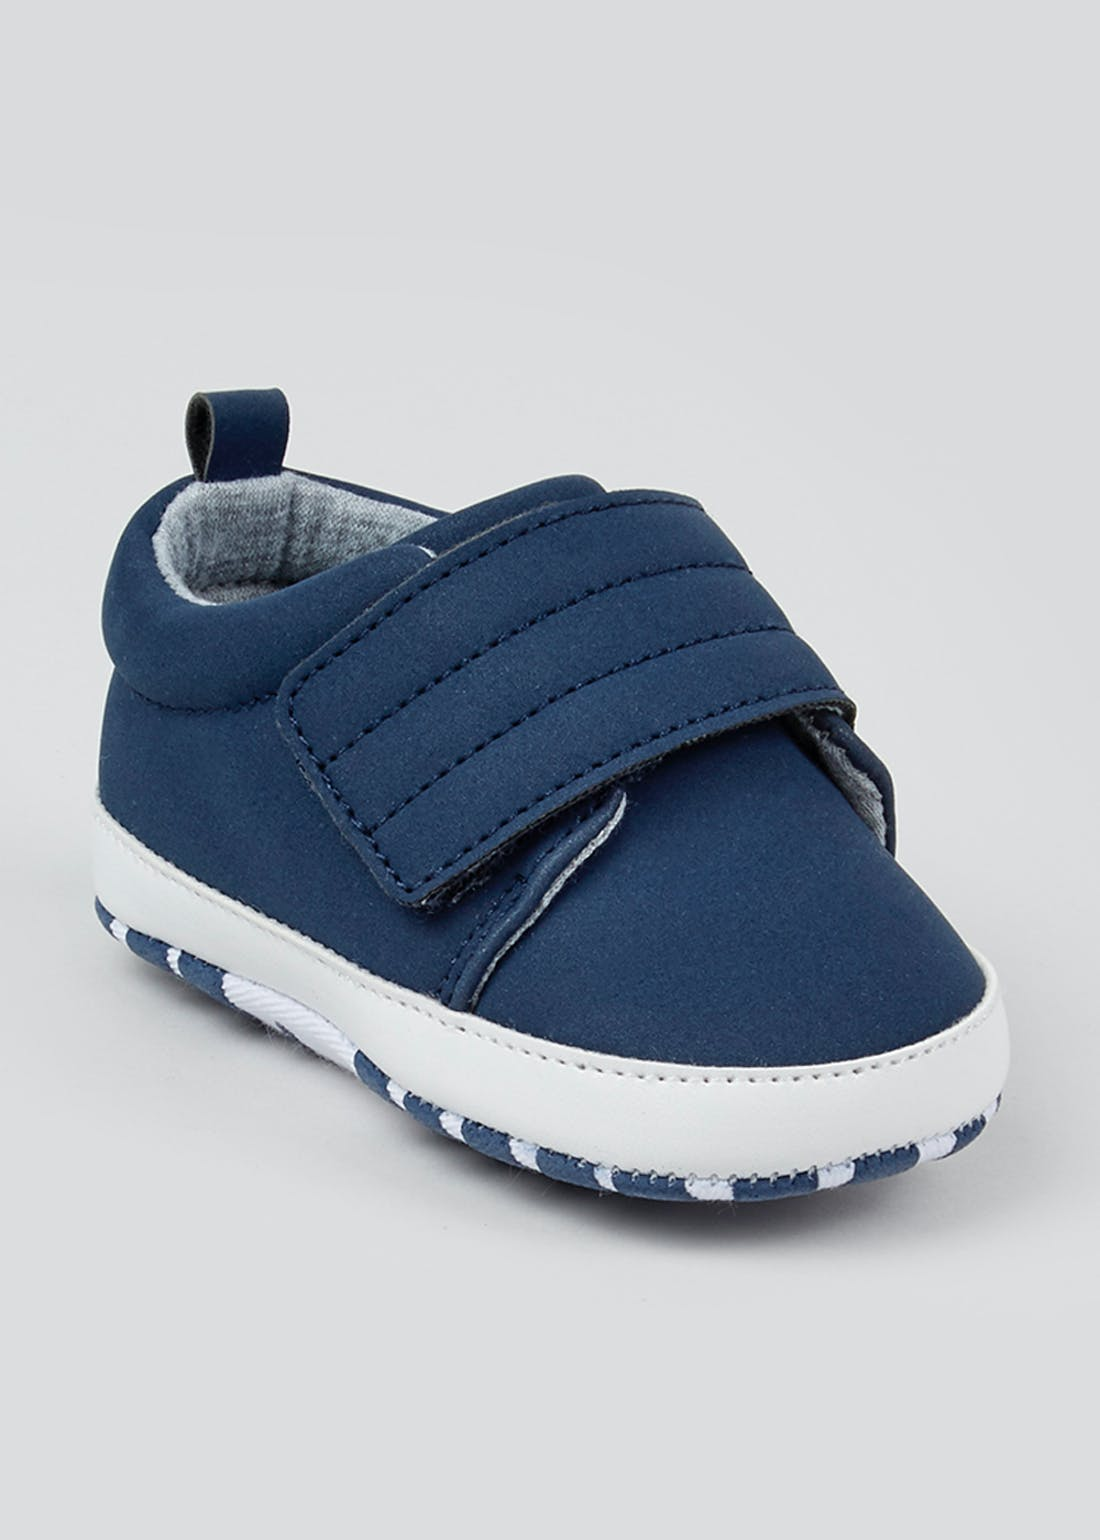 Boys Navy Soft Sole Trainers (Newborn-18mths)